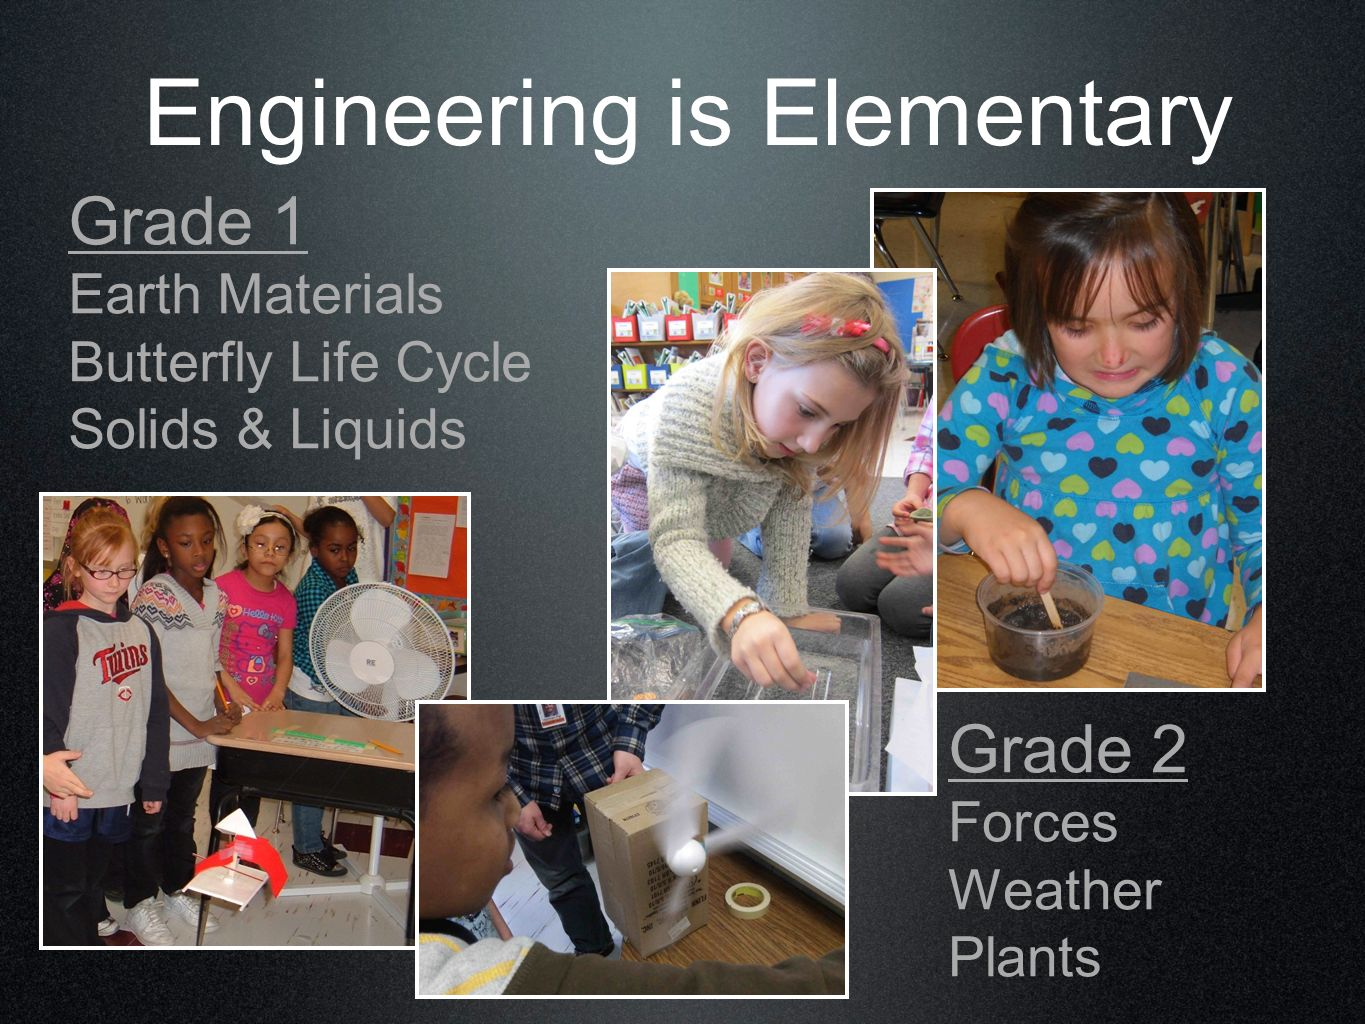 Engineering is Elementary Grade 1 Earth Materials Butterfly Life Cycle Solids & Liquids Grade 2 Forces Weather Plants